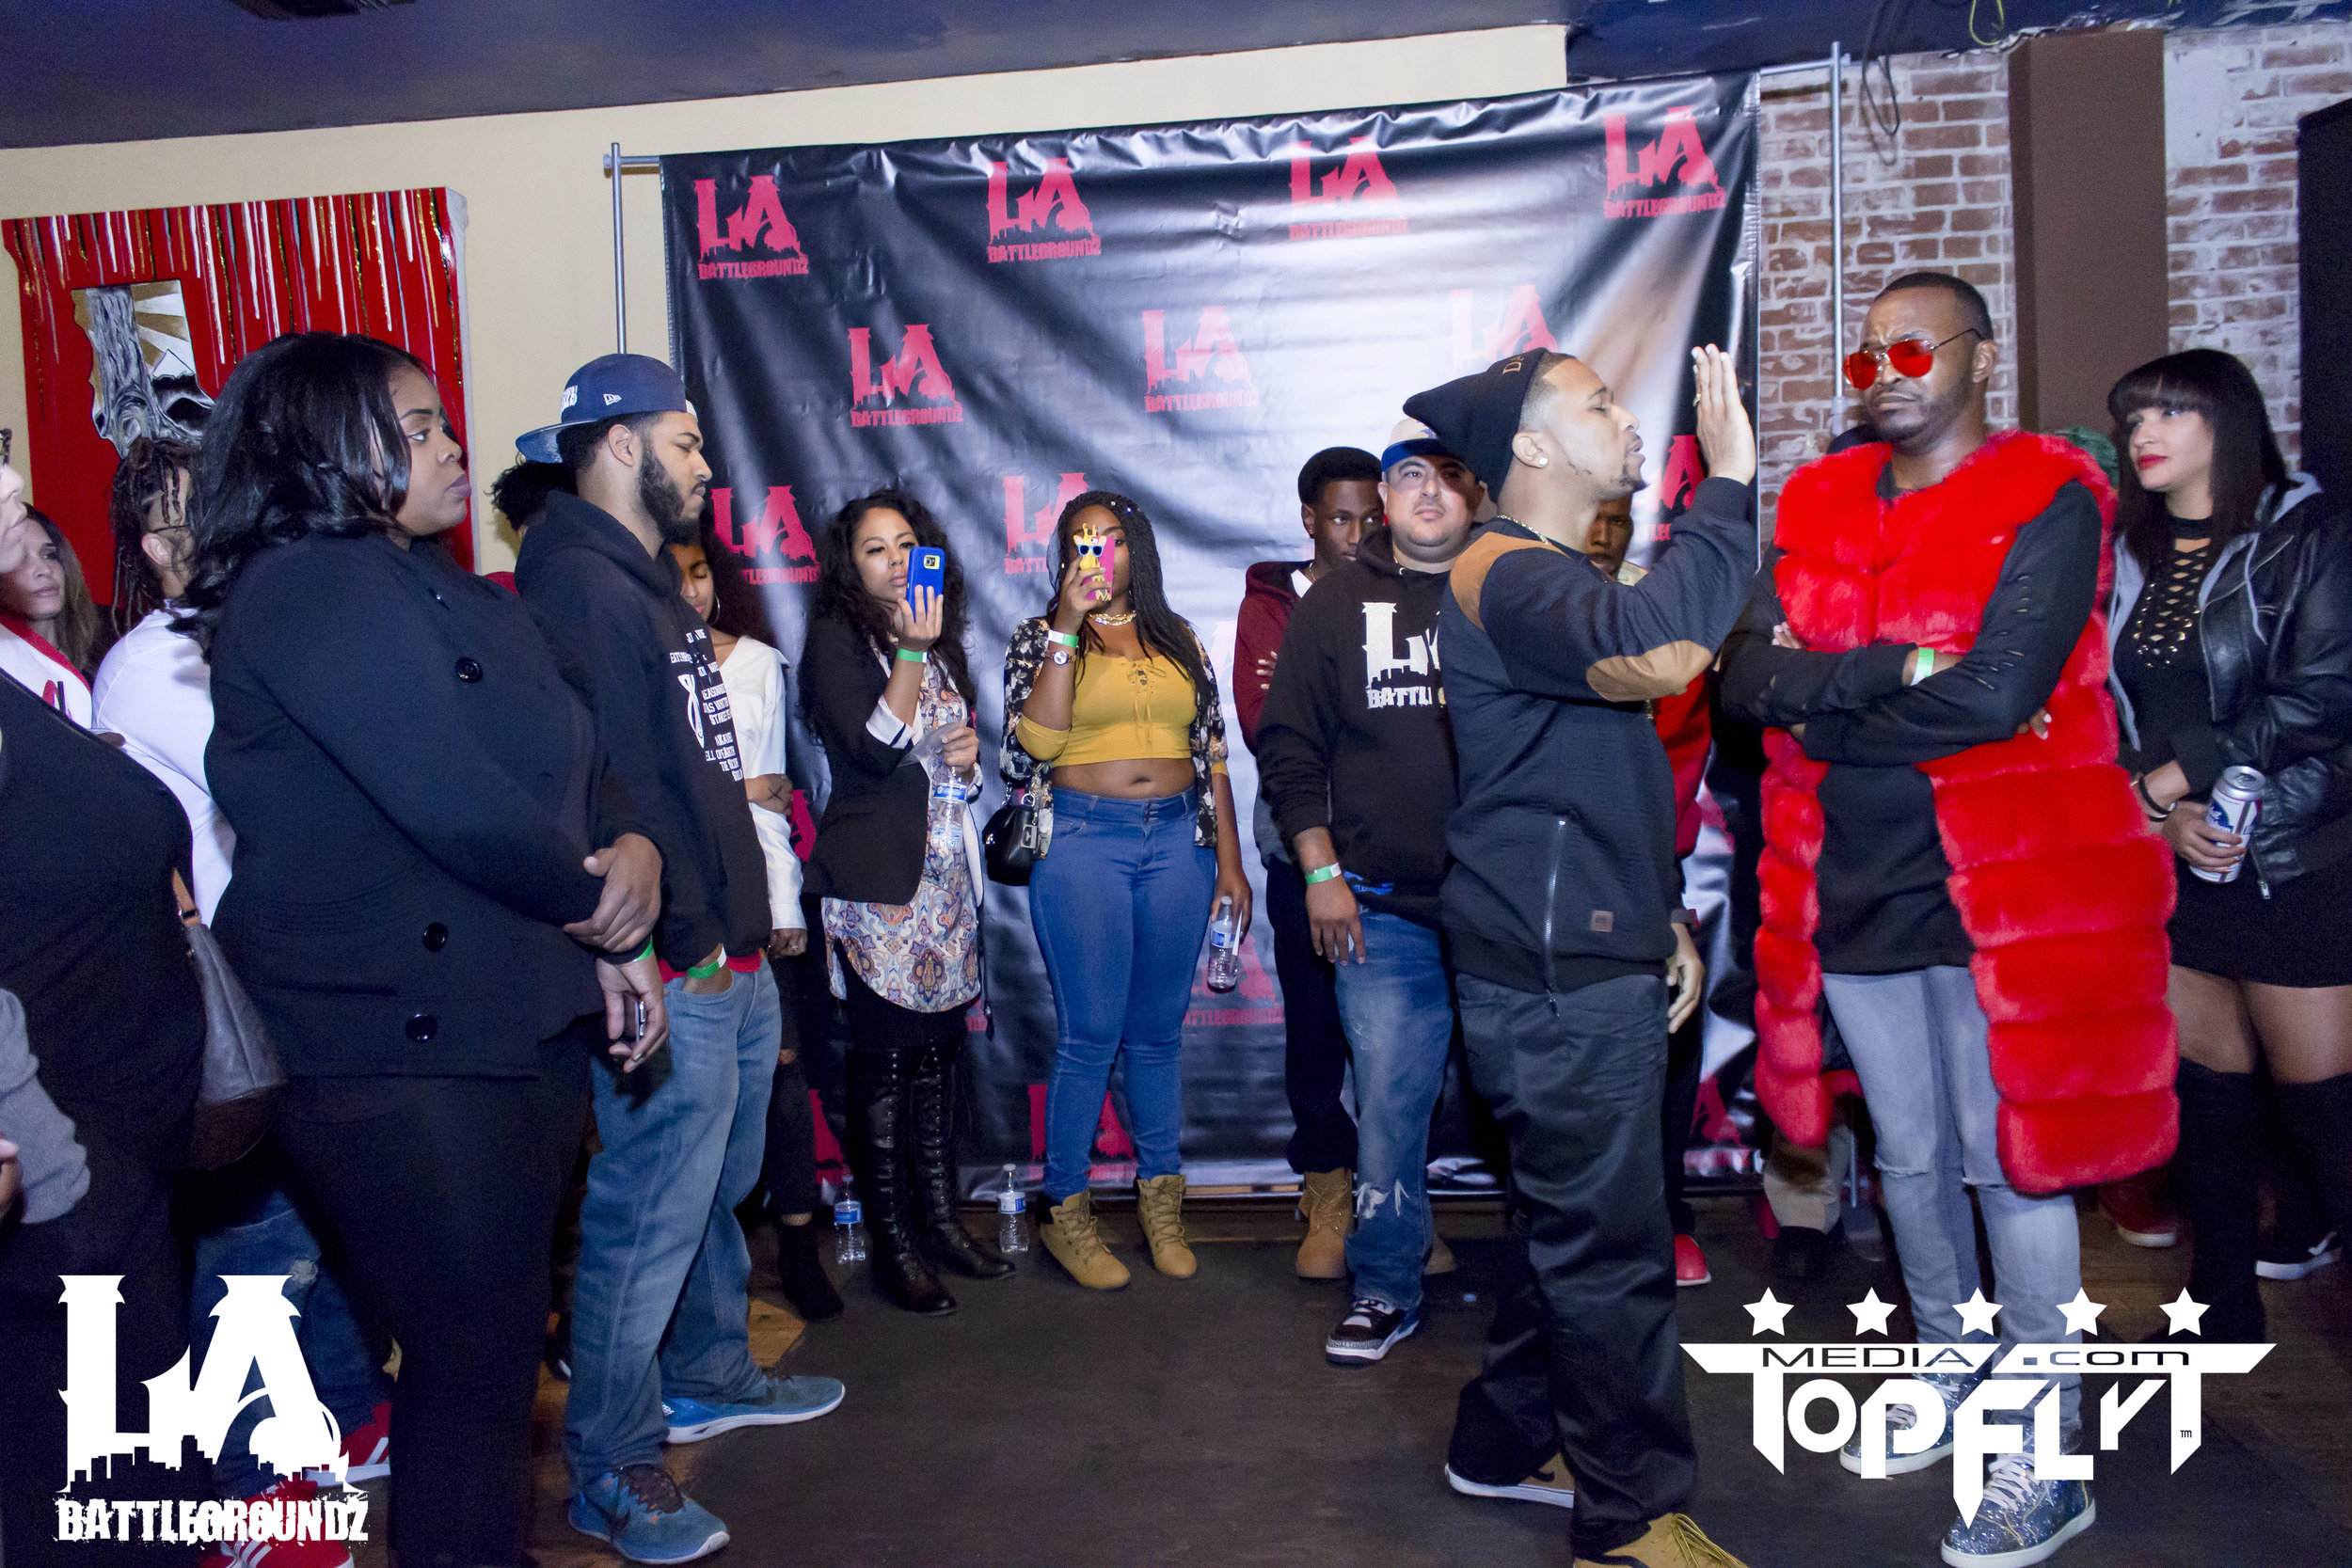 LA Battlegroundz - Decembarfest - The Christening_60.jpg